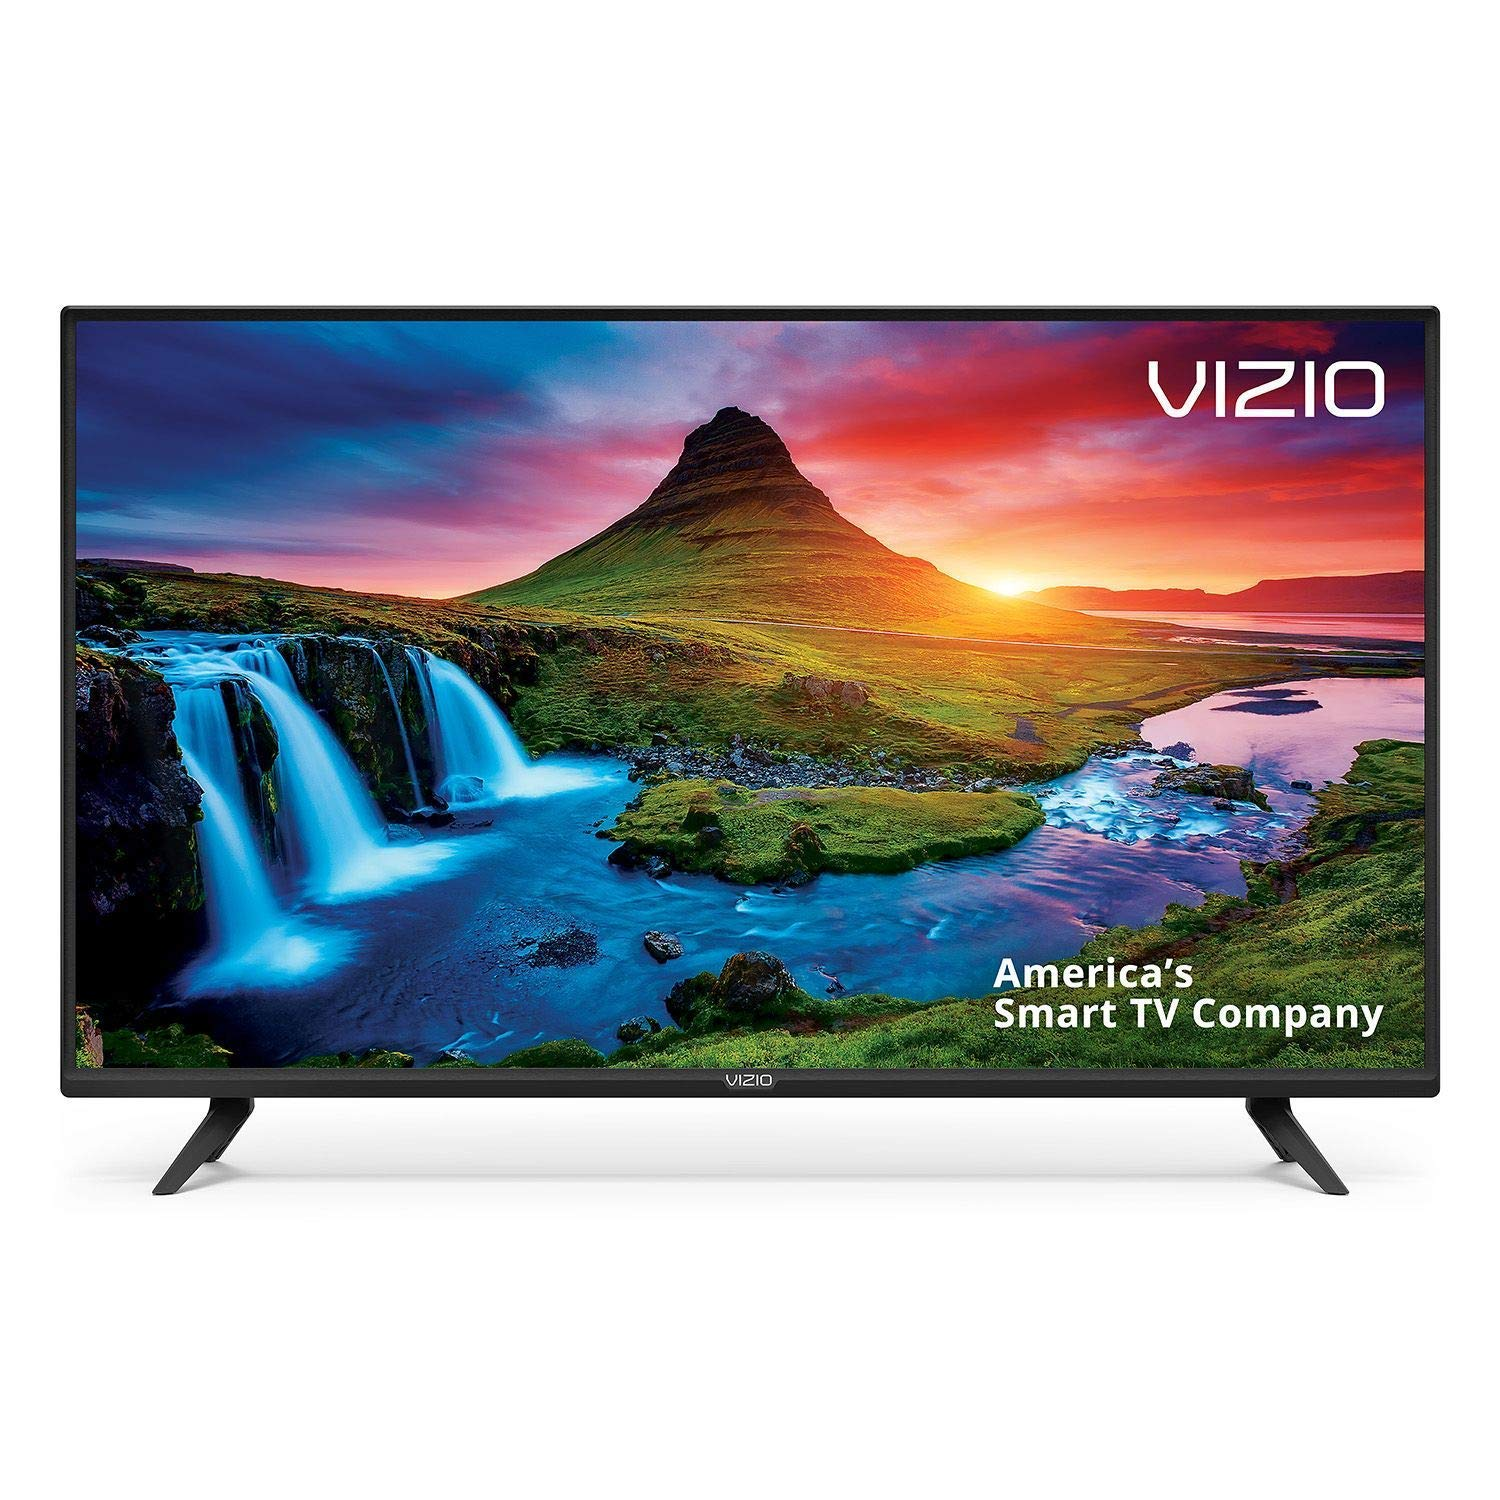 VIZIO D-Series 40'' Class Smart TV - D40f-G9 by VIZIO